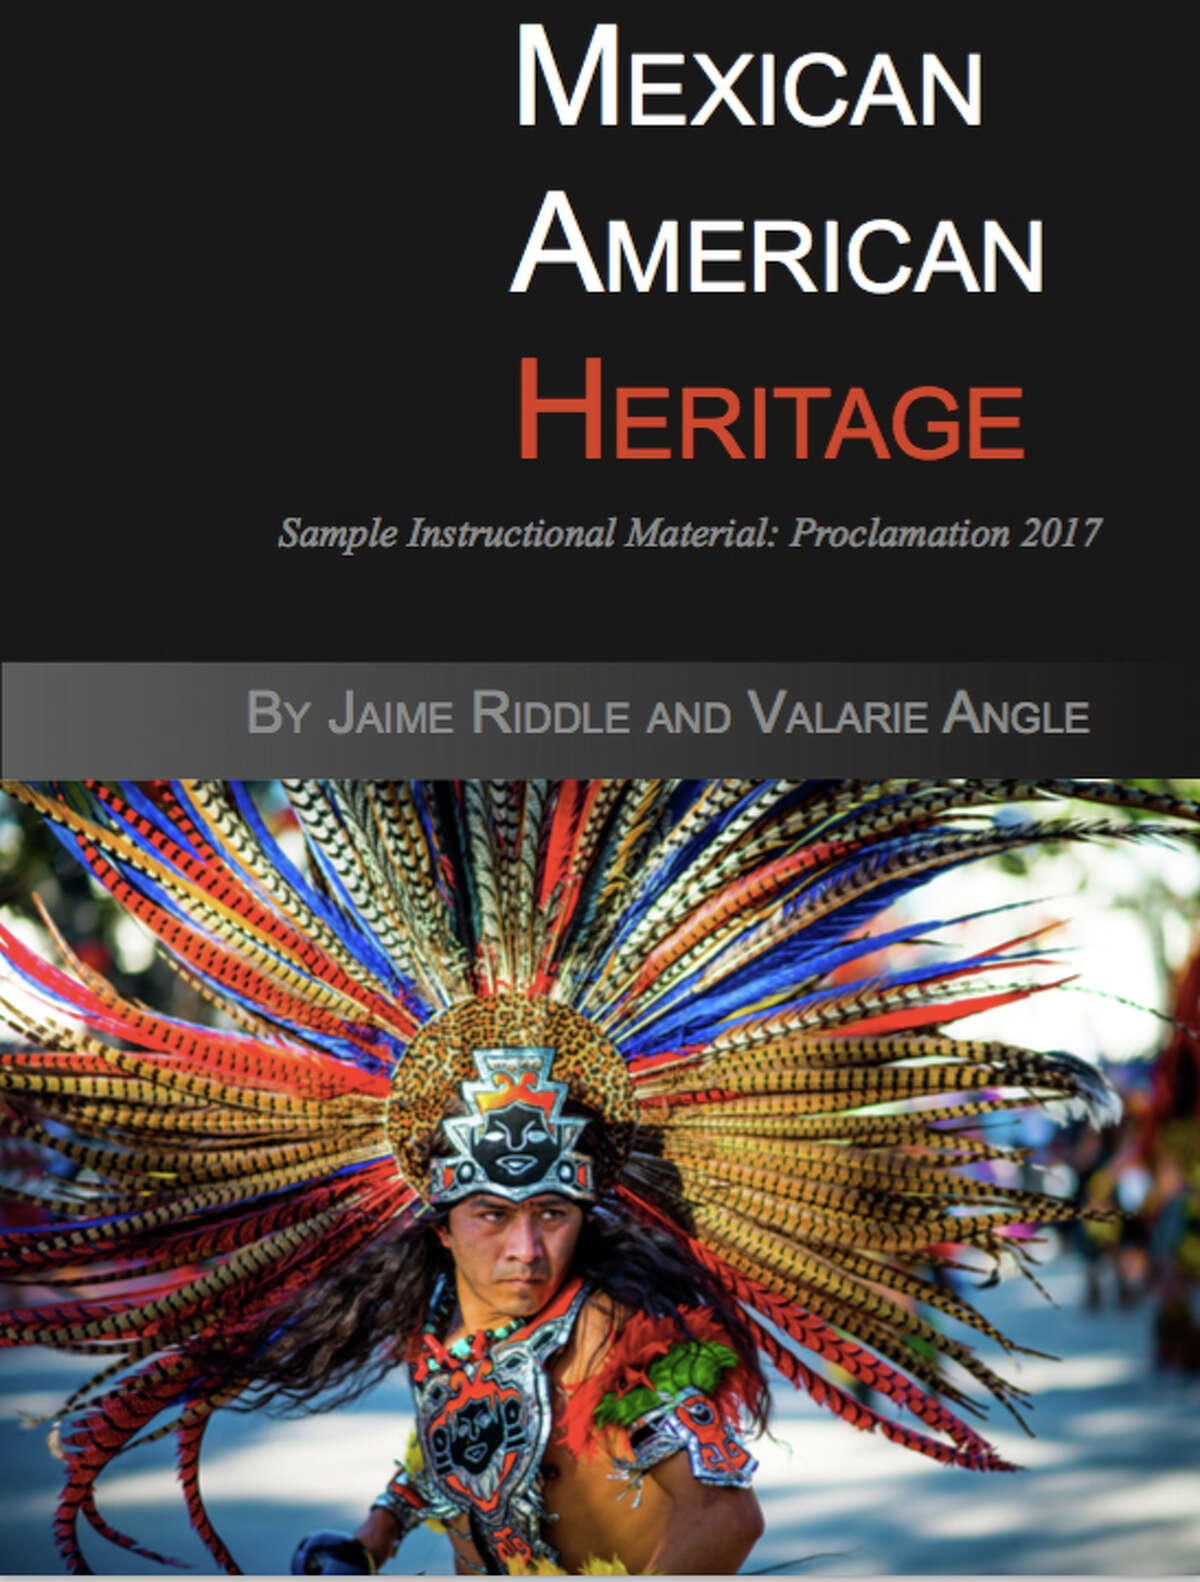 Mexican American Heritage, a new textbook proposed for Texas public schools. Keep clicking for 20 signs you grew up Mexican-American in Texas.